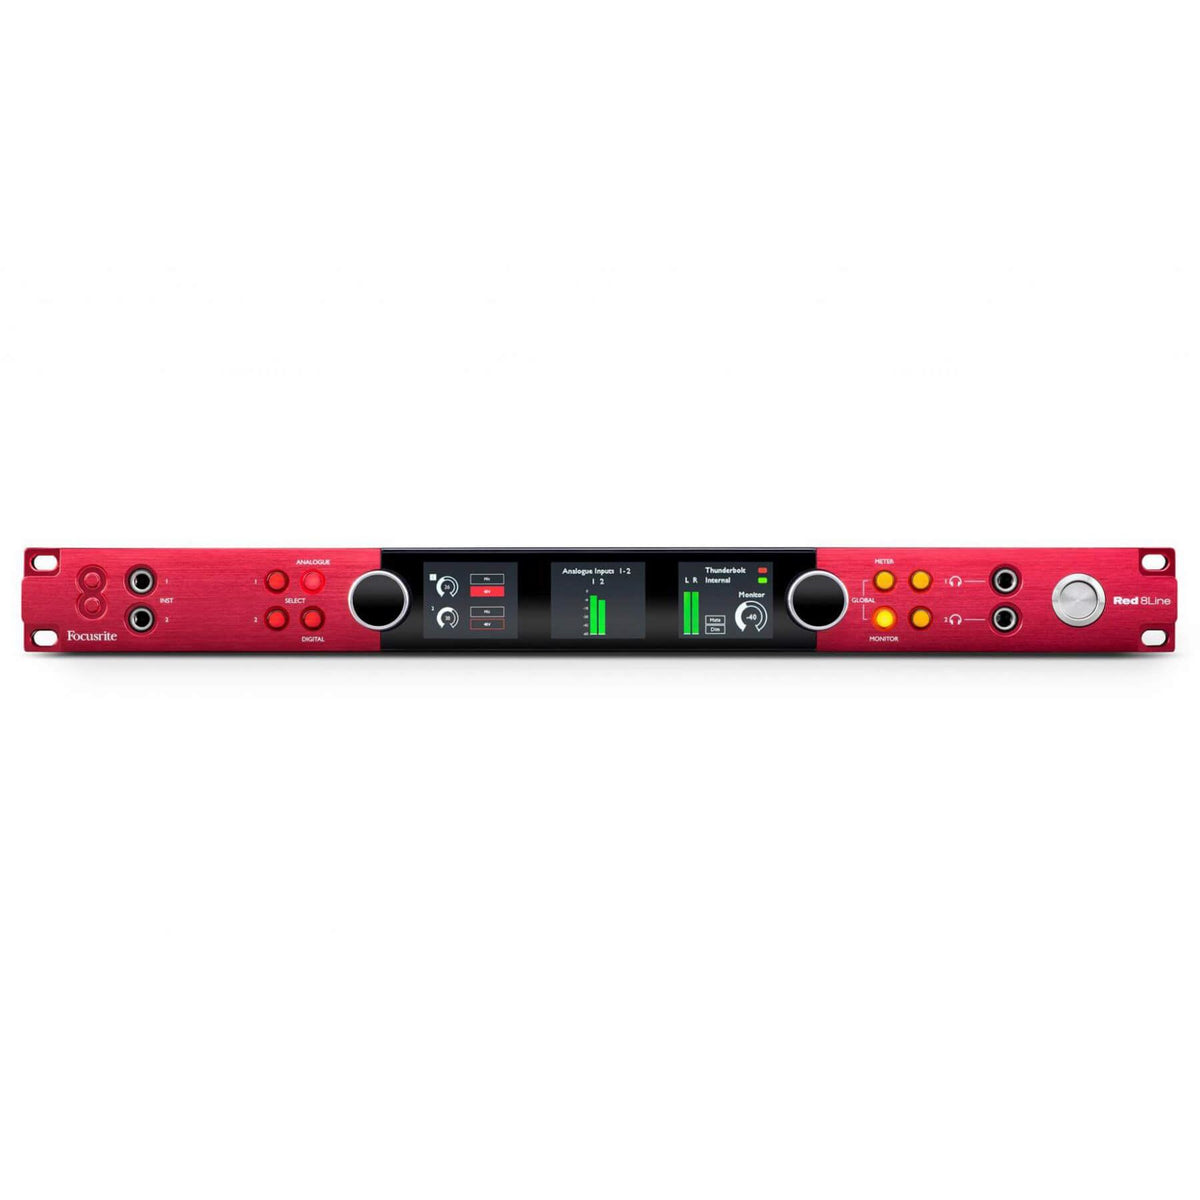 Focusrite Pro Red 8Line 58x64 Thunderbolt 3 Audio Interface